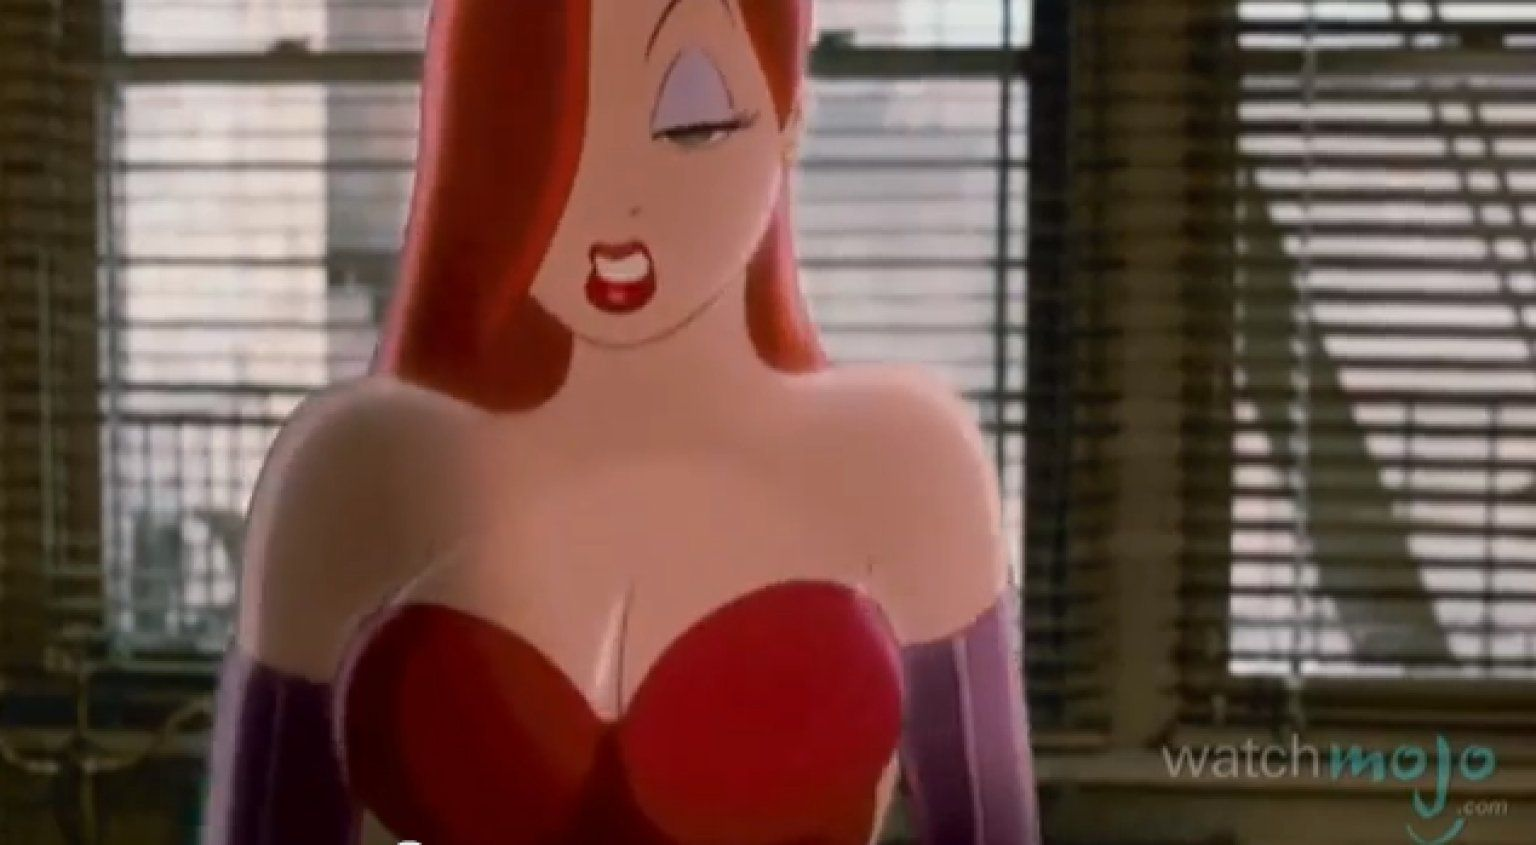 What Did I Just See Funny Video Clips Jessica Rabbit Movie Movies